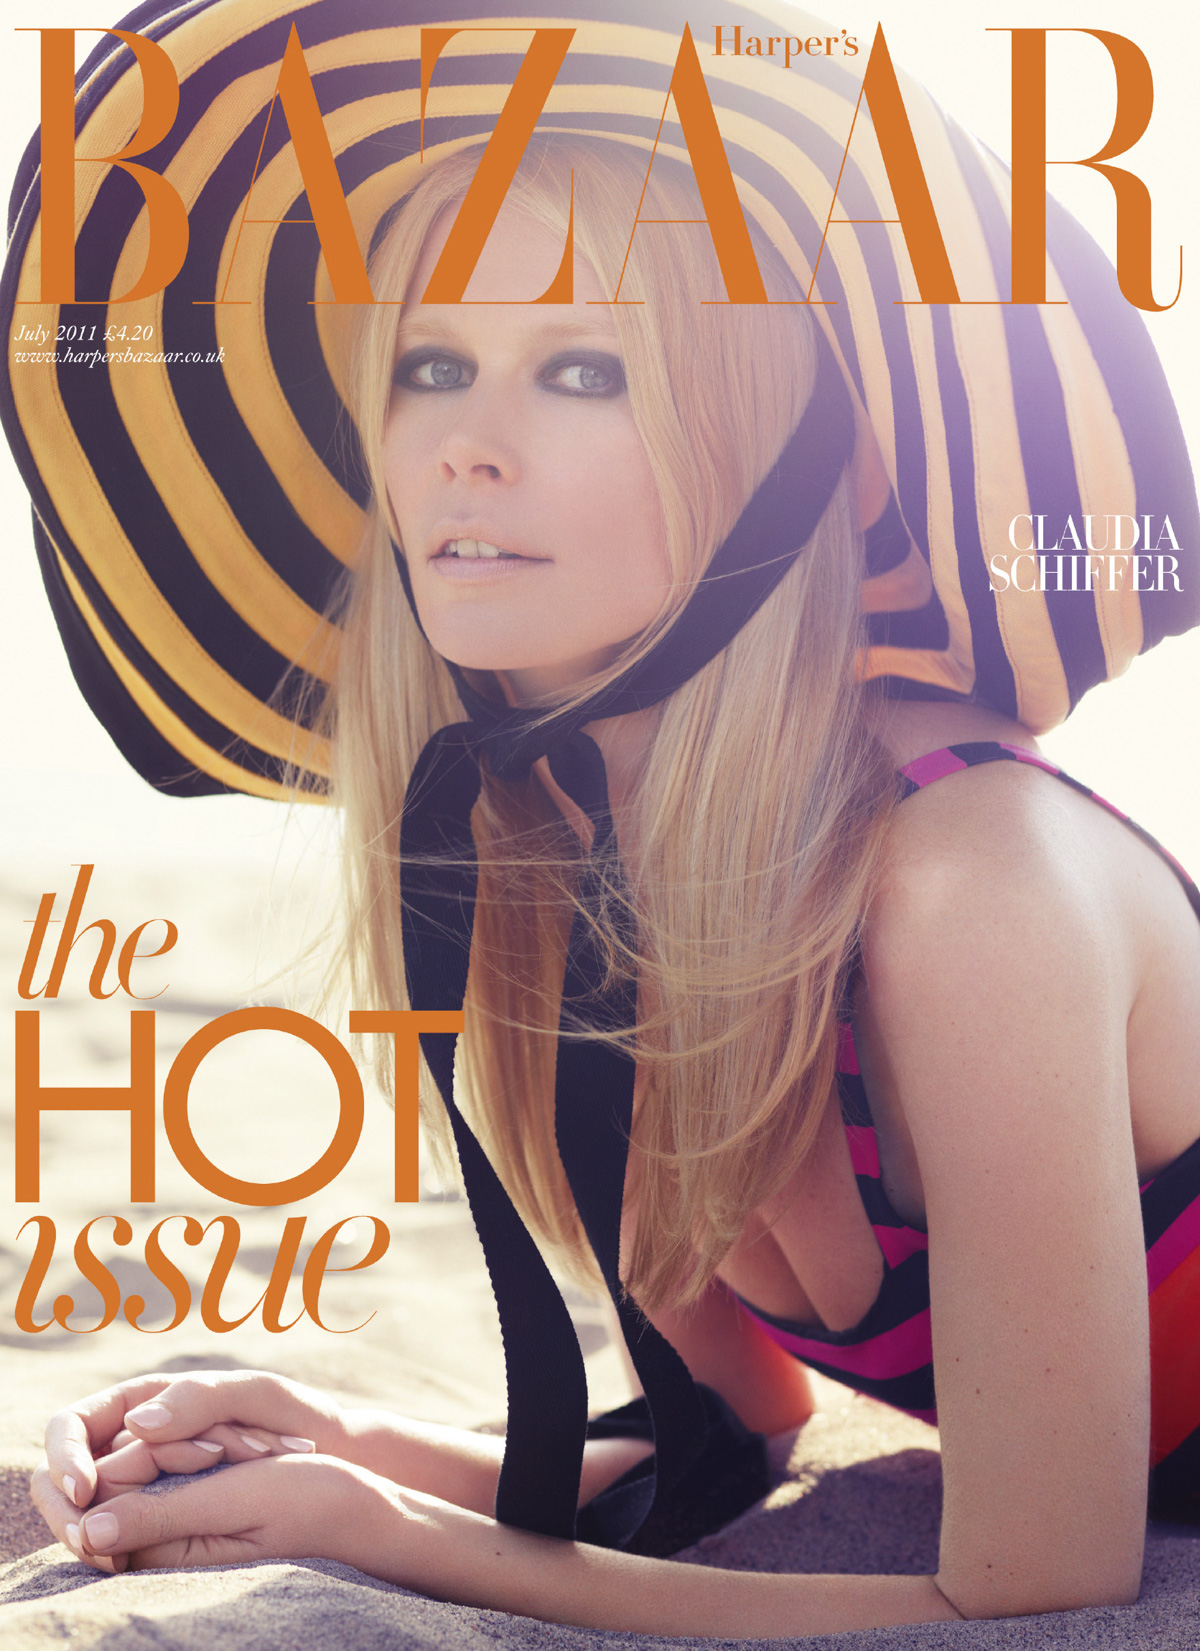 house-of-usher-harpers-bazaar-magazine-09